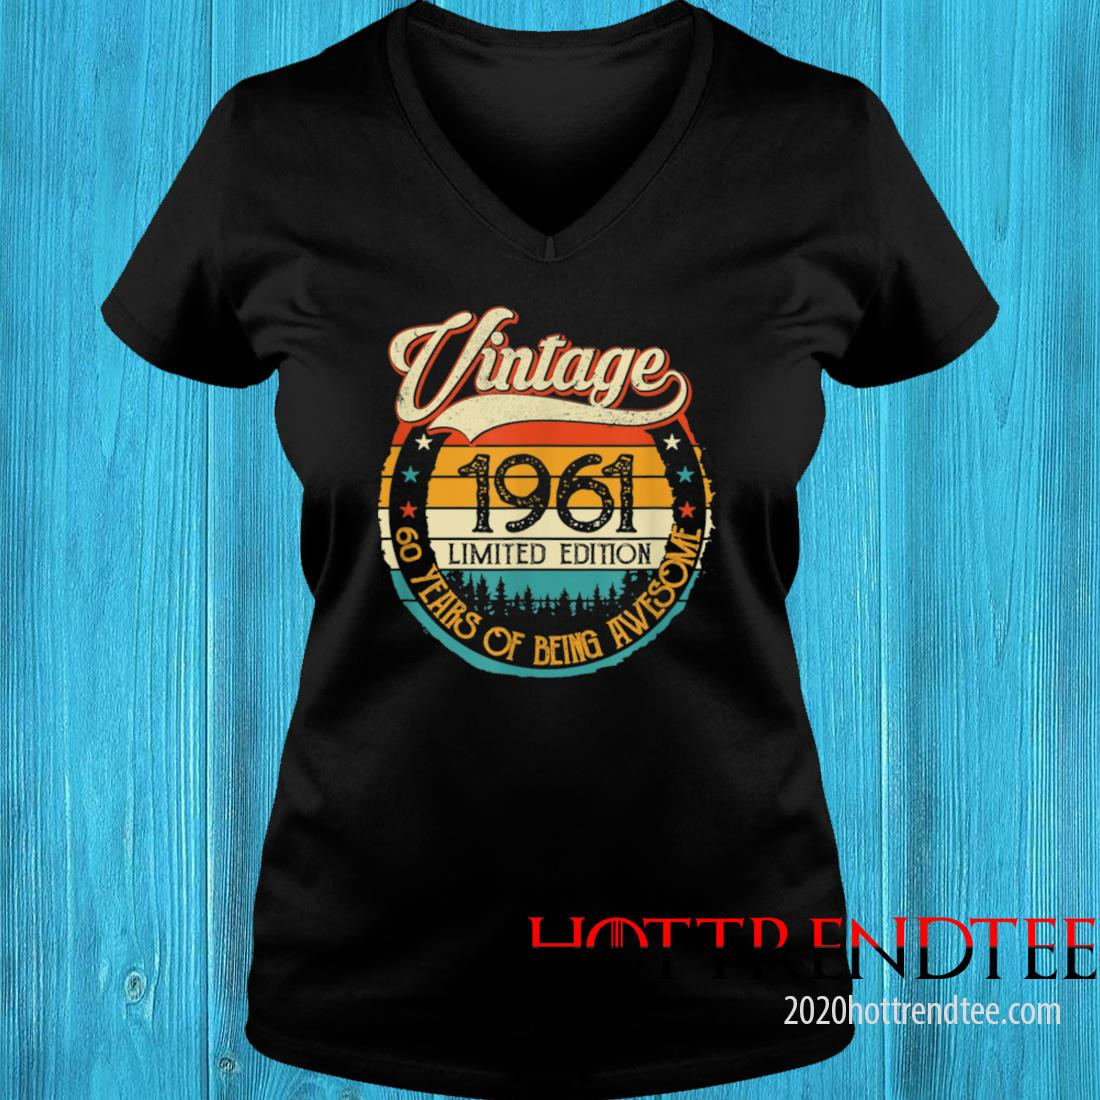 Vintage 1961 60th Birthday 60 Years Old Bday Birthday Queen Shirt v-neck tee